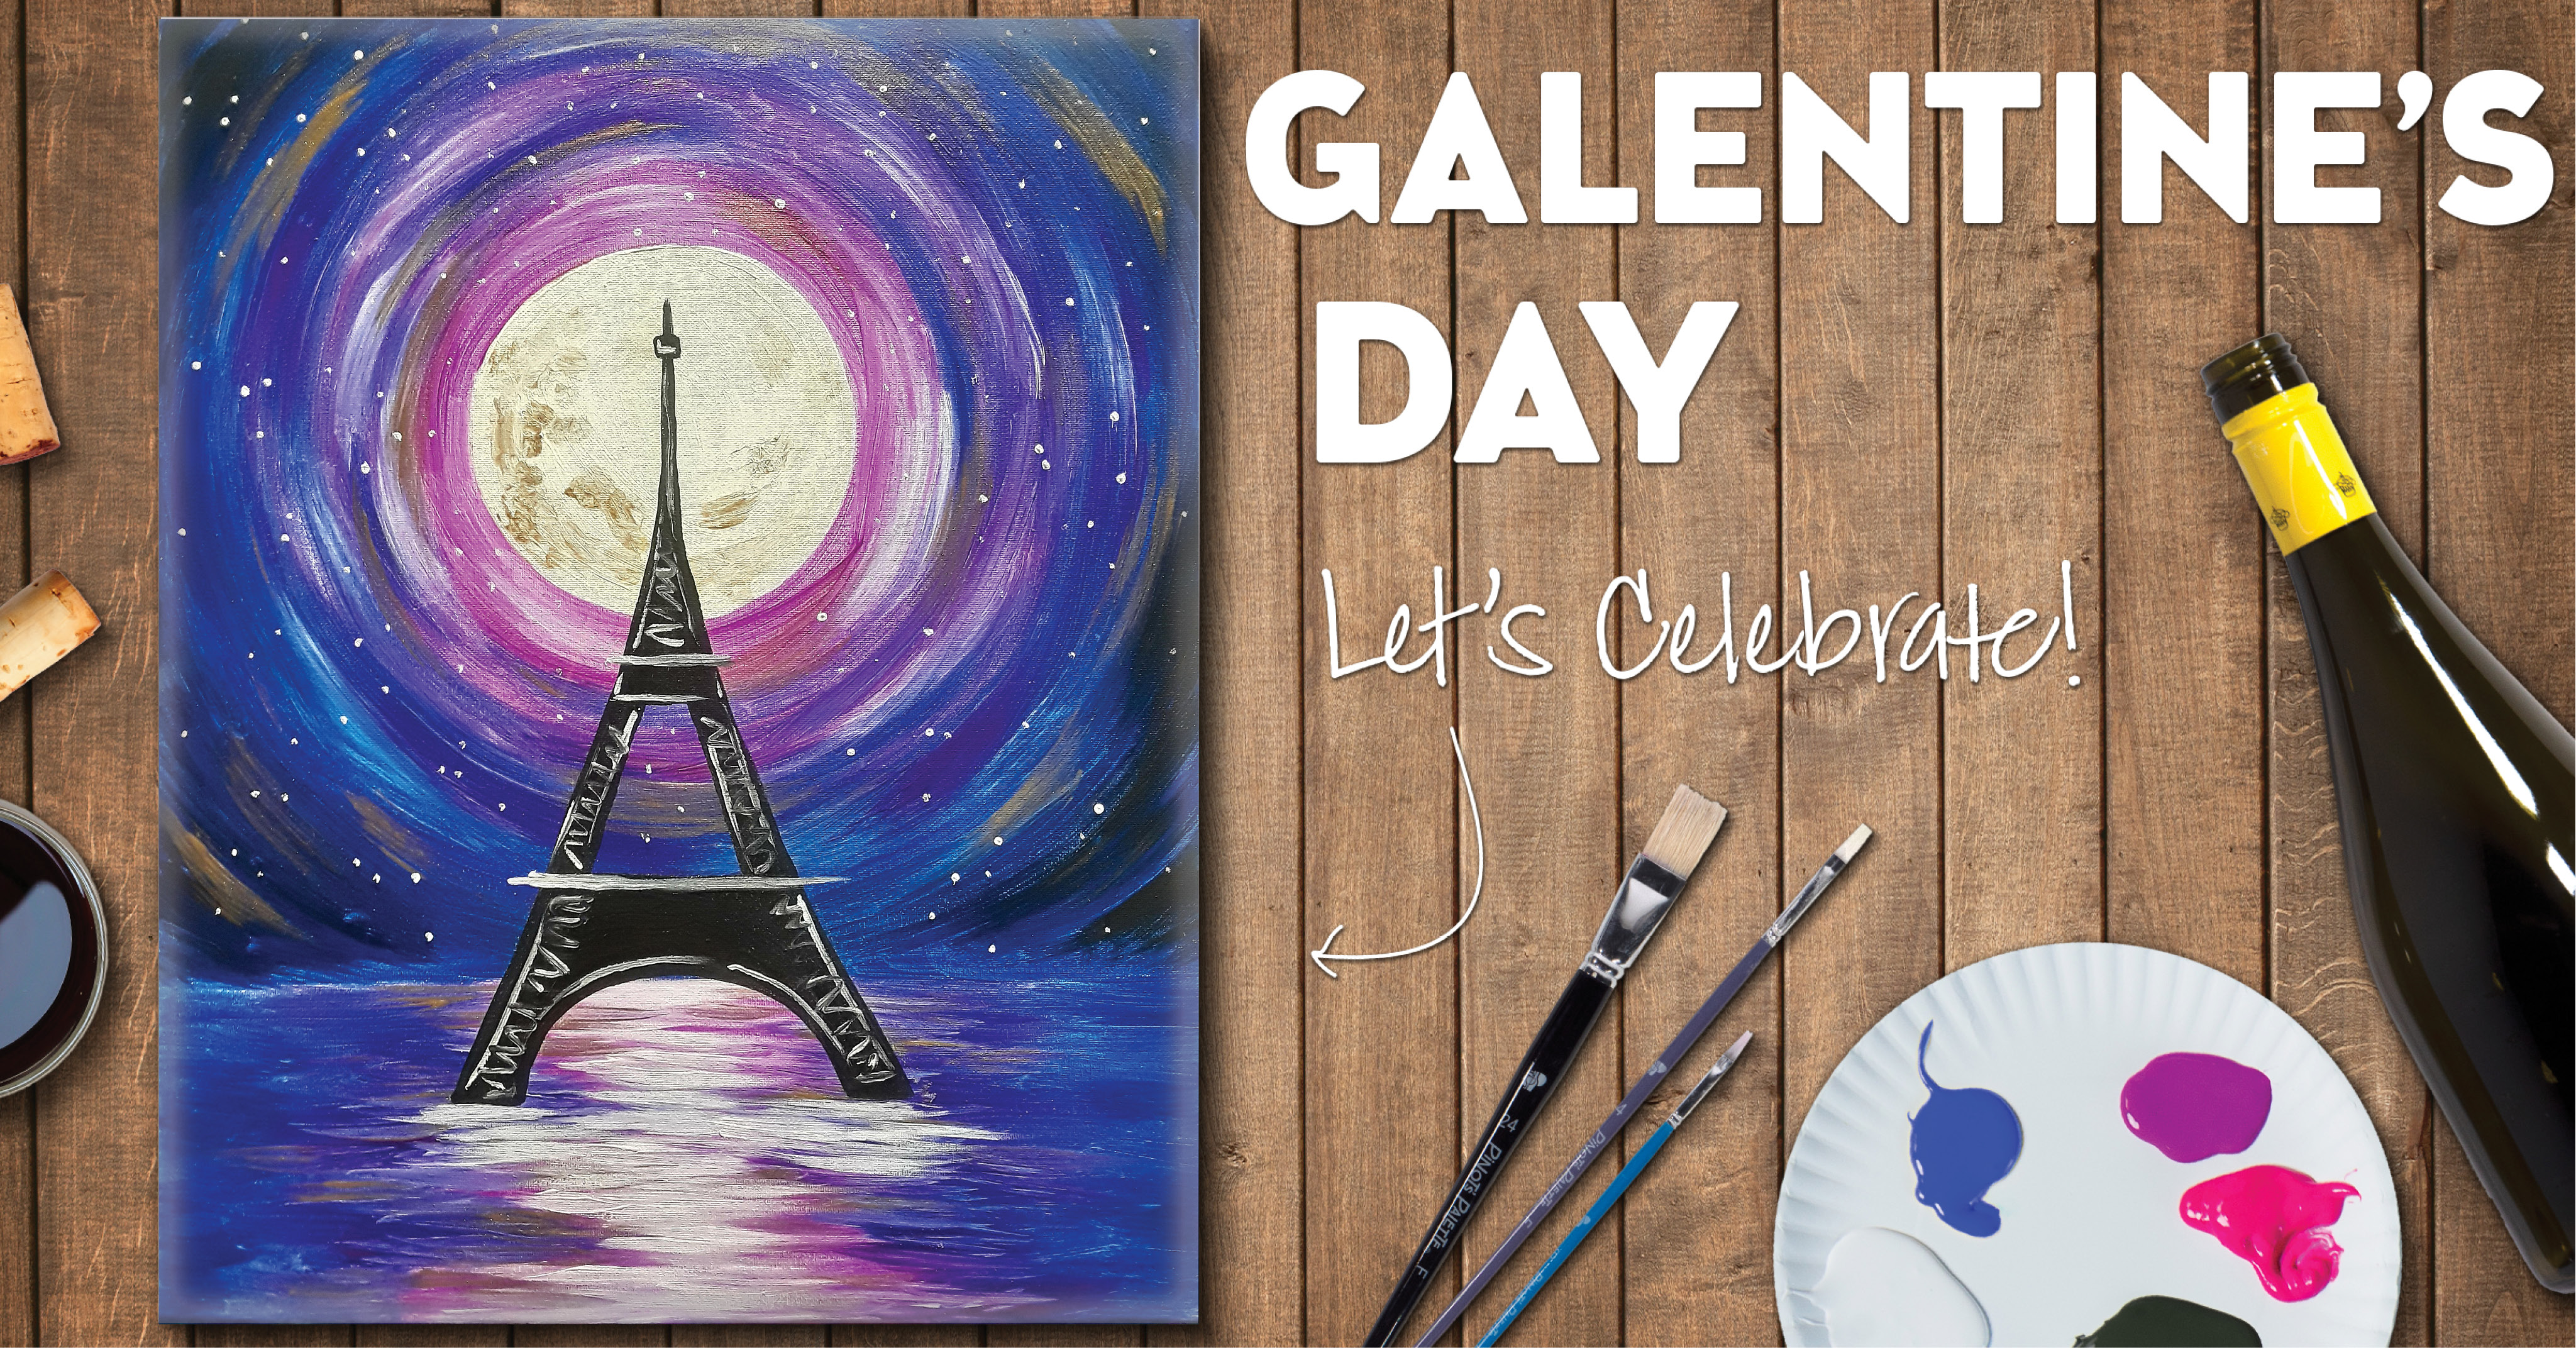 Galentine's Day Celebration  at Pinot's Palette